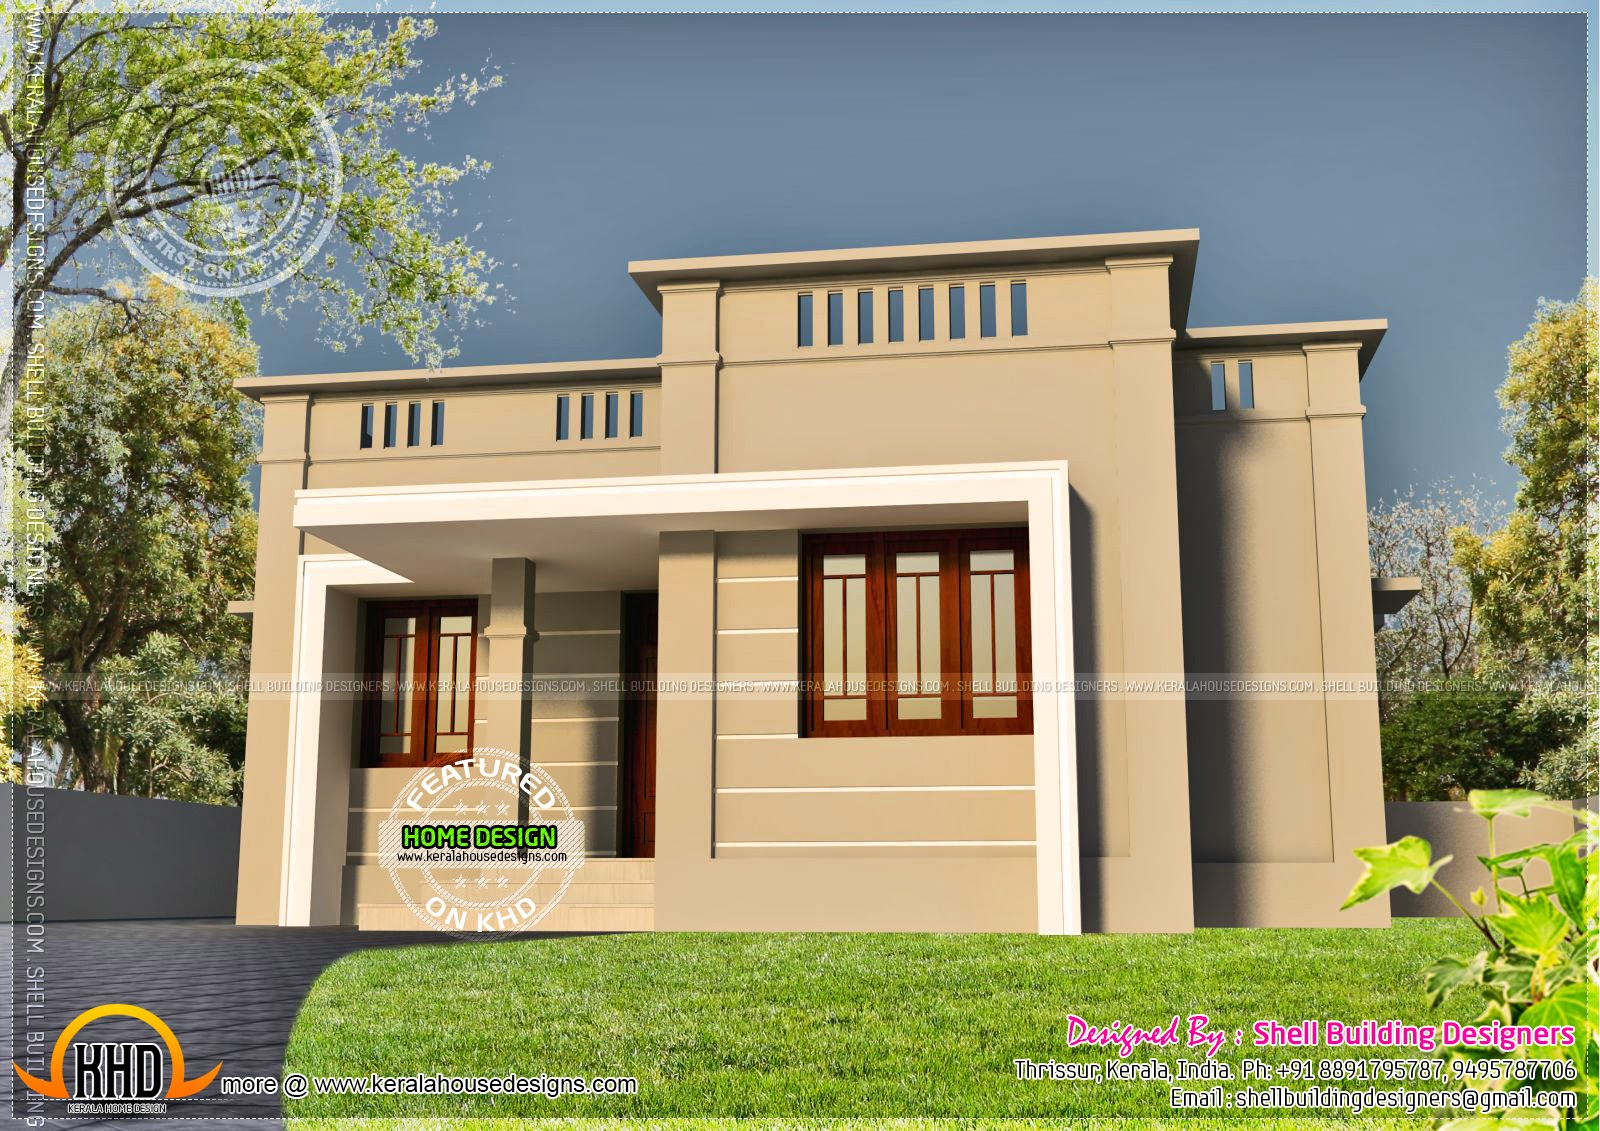 Very small house exterior kerala home design and floor plans for House decoration ideas for small house